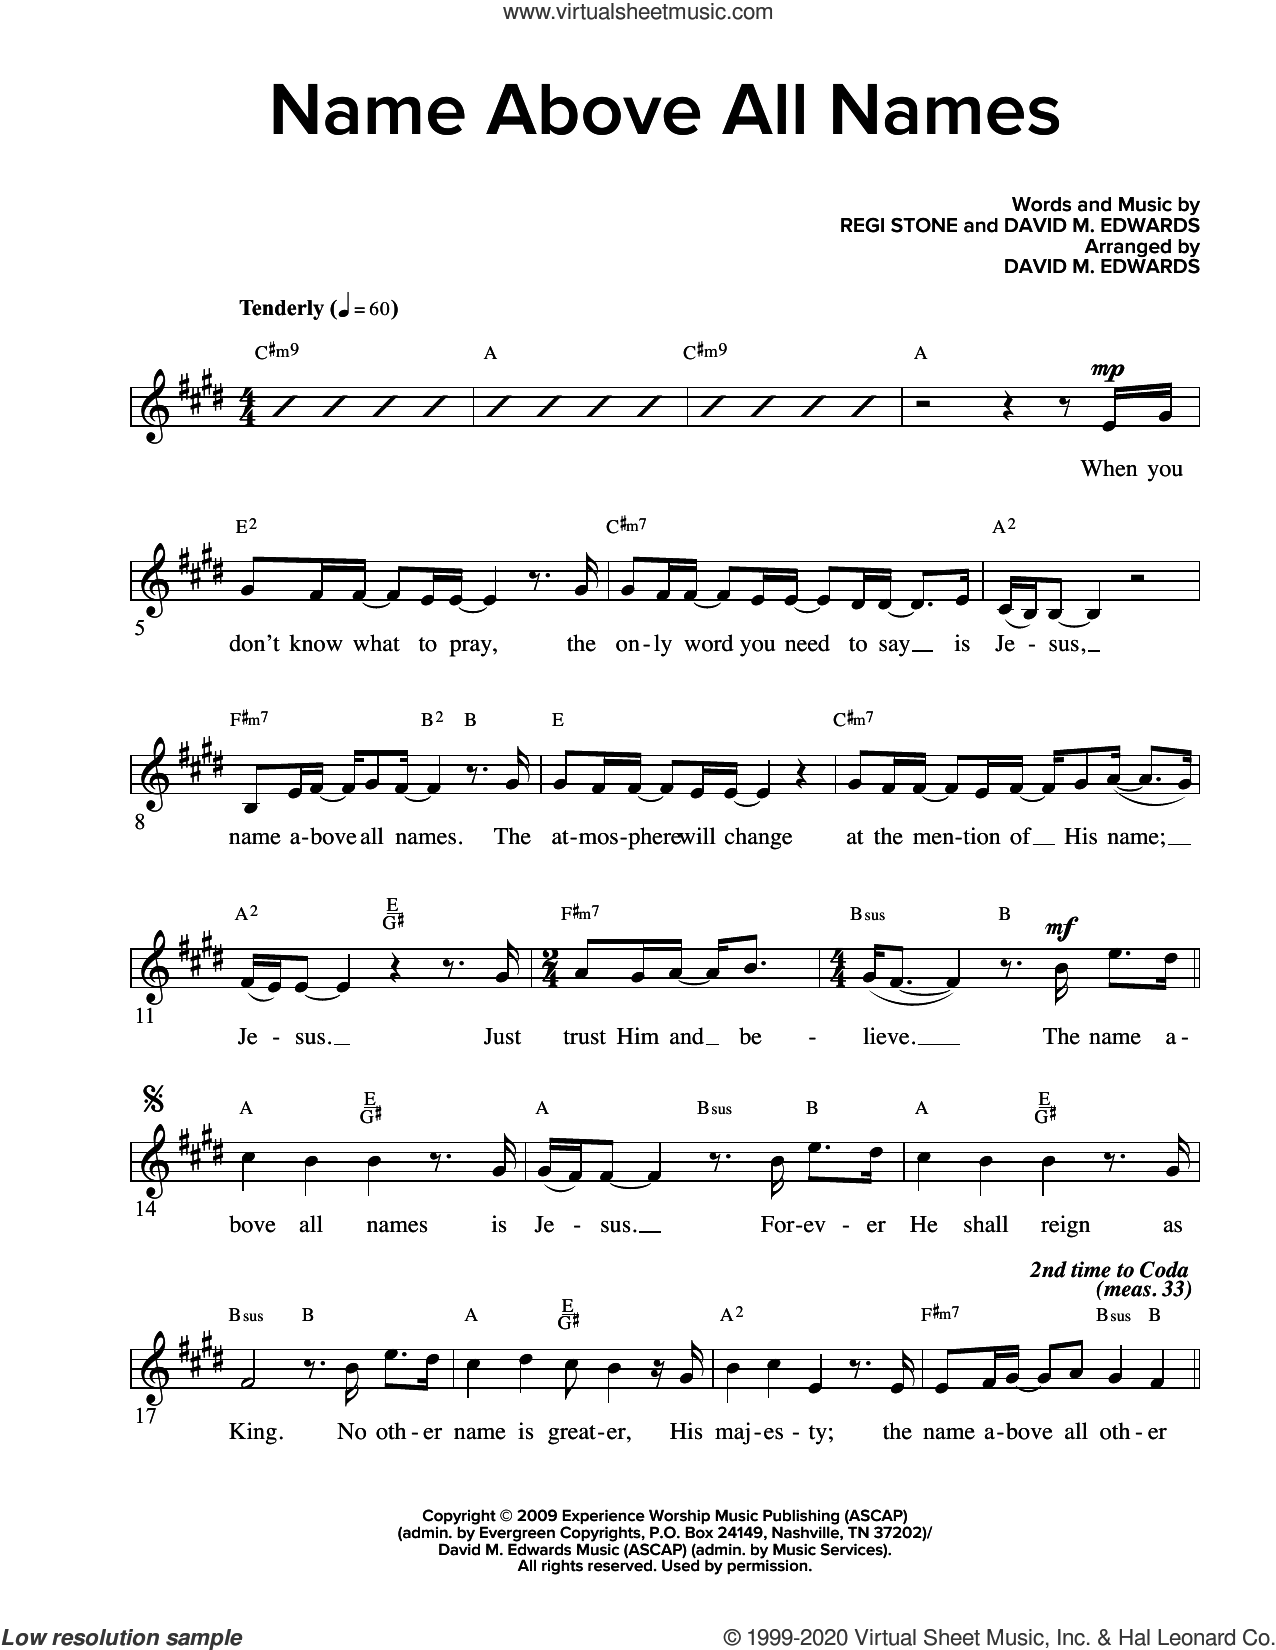 Name Above All Names (arr. David M. Edwards) sheet music for voice and other instruments (fake book) by Regi Stone, David M. Edwards and Regi Stone and David M. Edwards, intermediate skill level